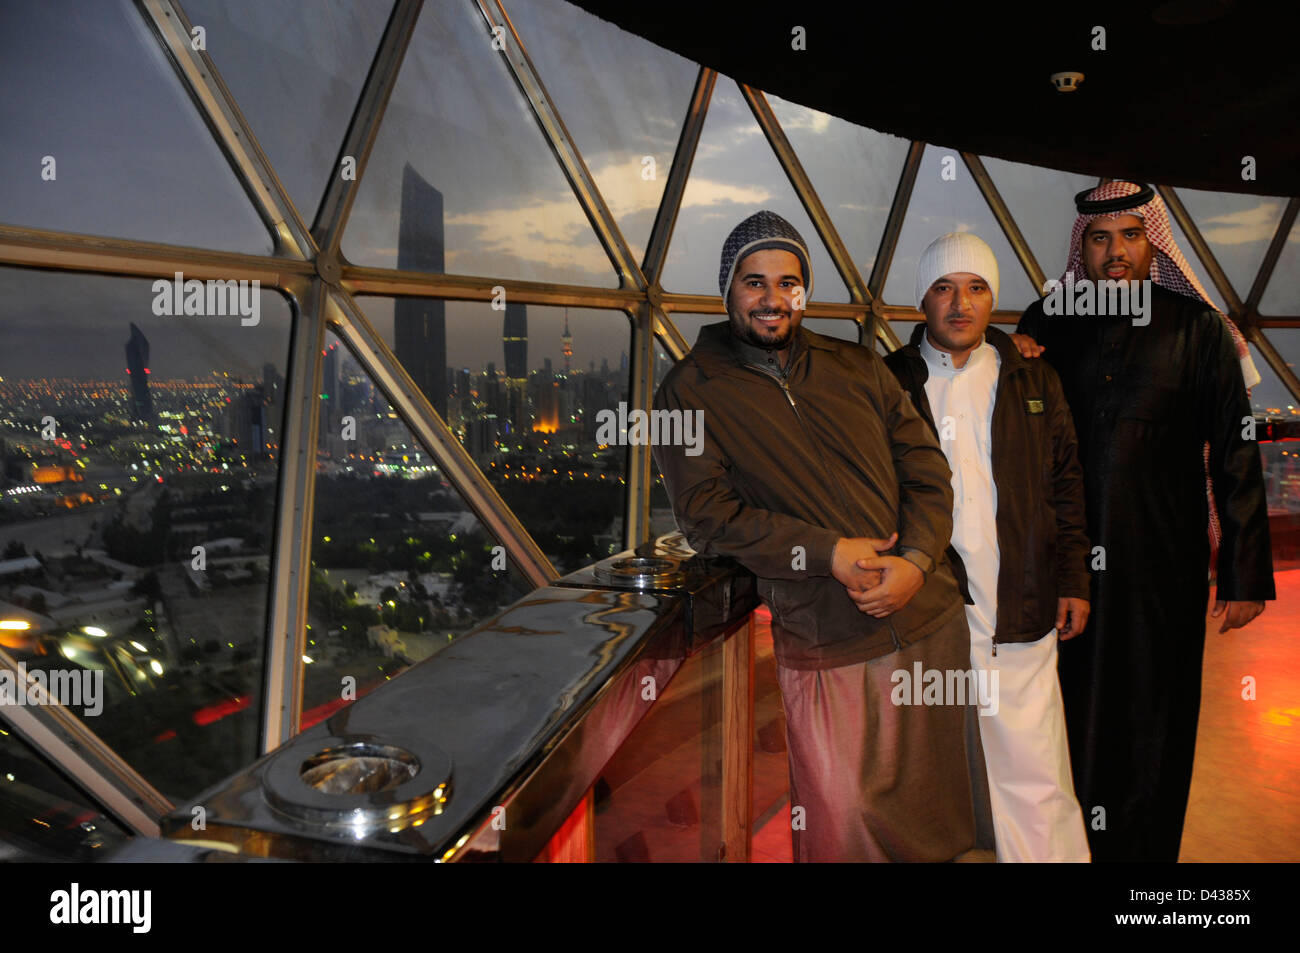 Three friends from Saudi Arabia posing for a photo in Kuwait Towers, Kuwait City - Stock Image